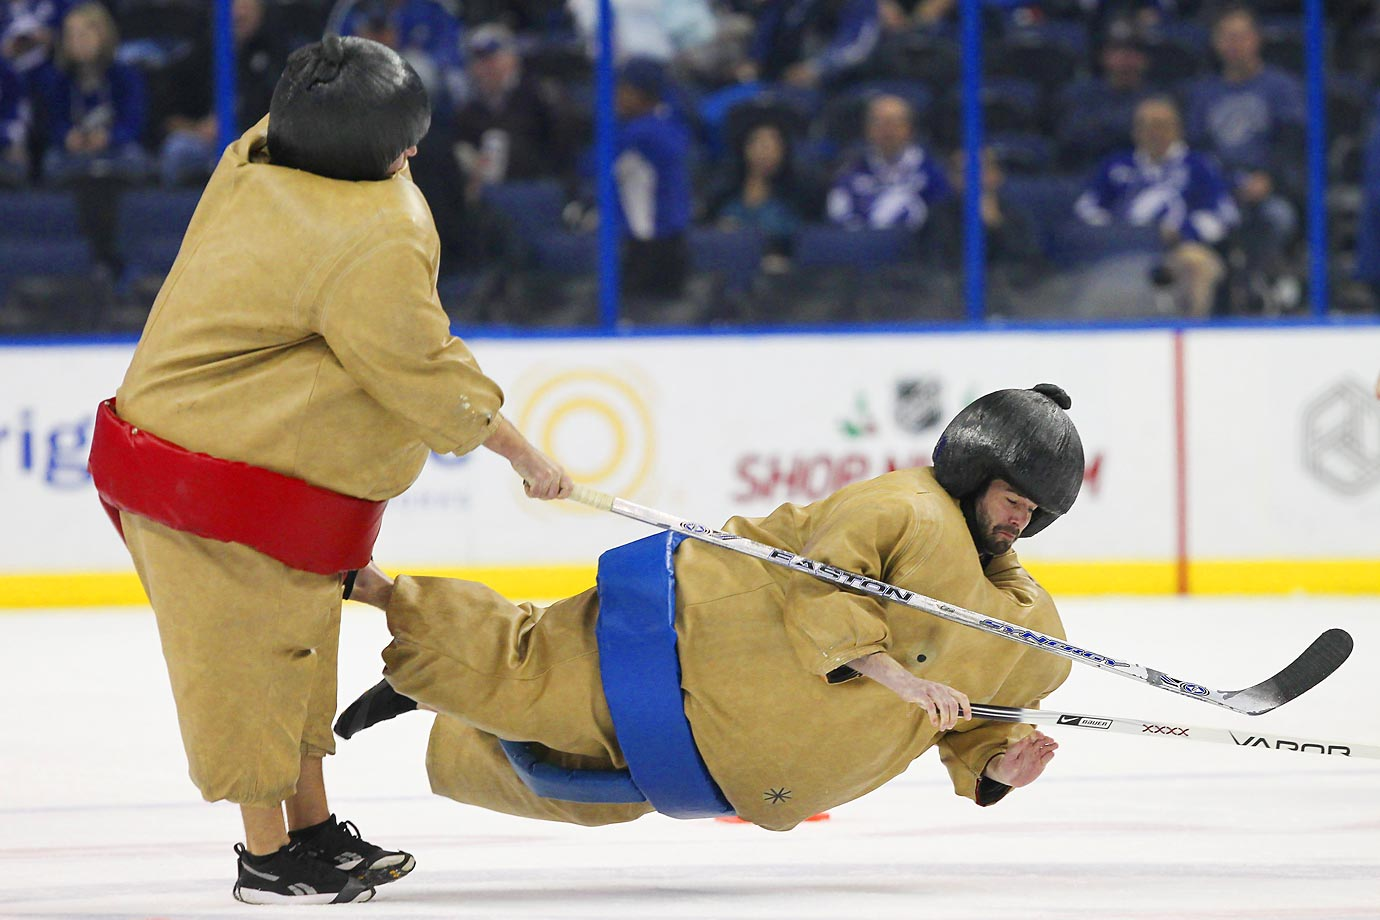 Tampa Bay Lightning fans wearing sumo outfits take part in a promotion during the game against the Carolina Hurricanes.